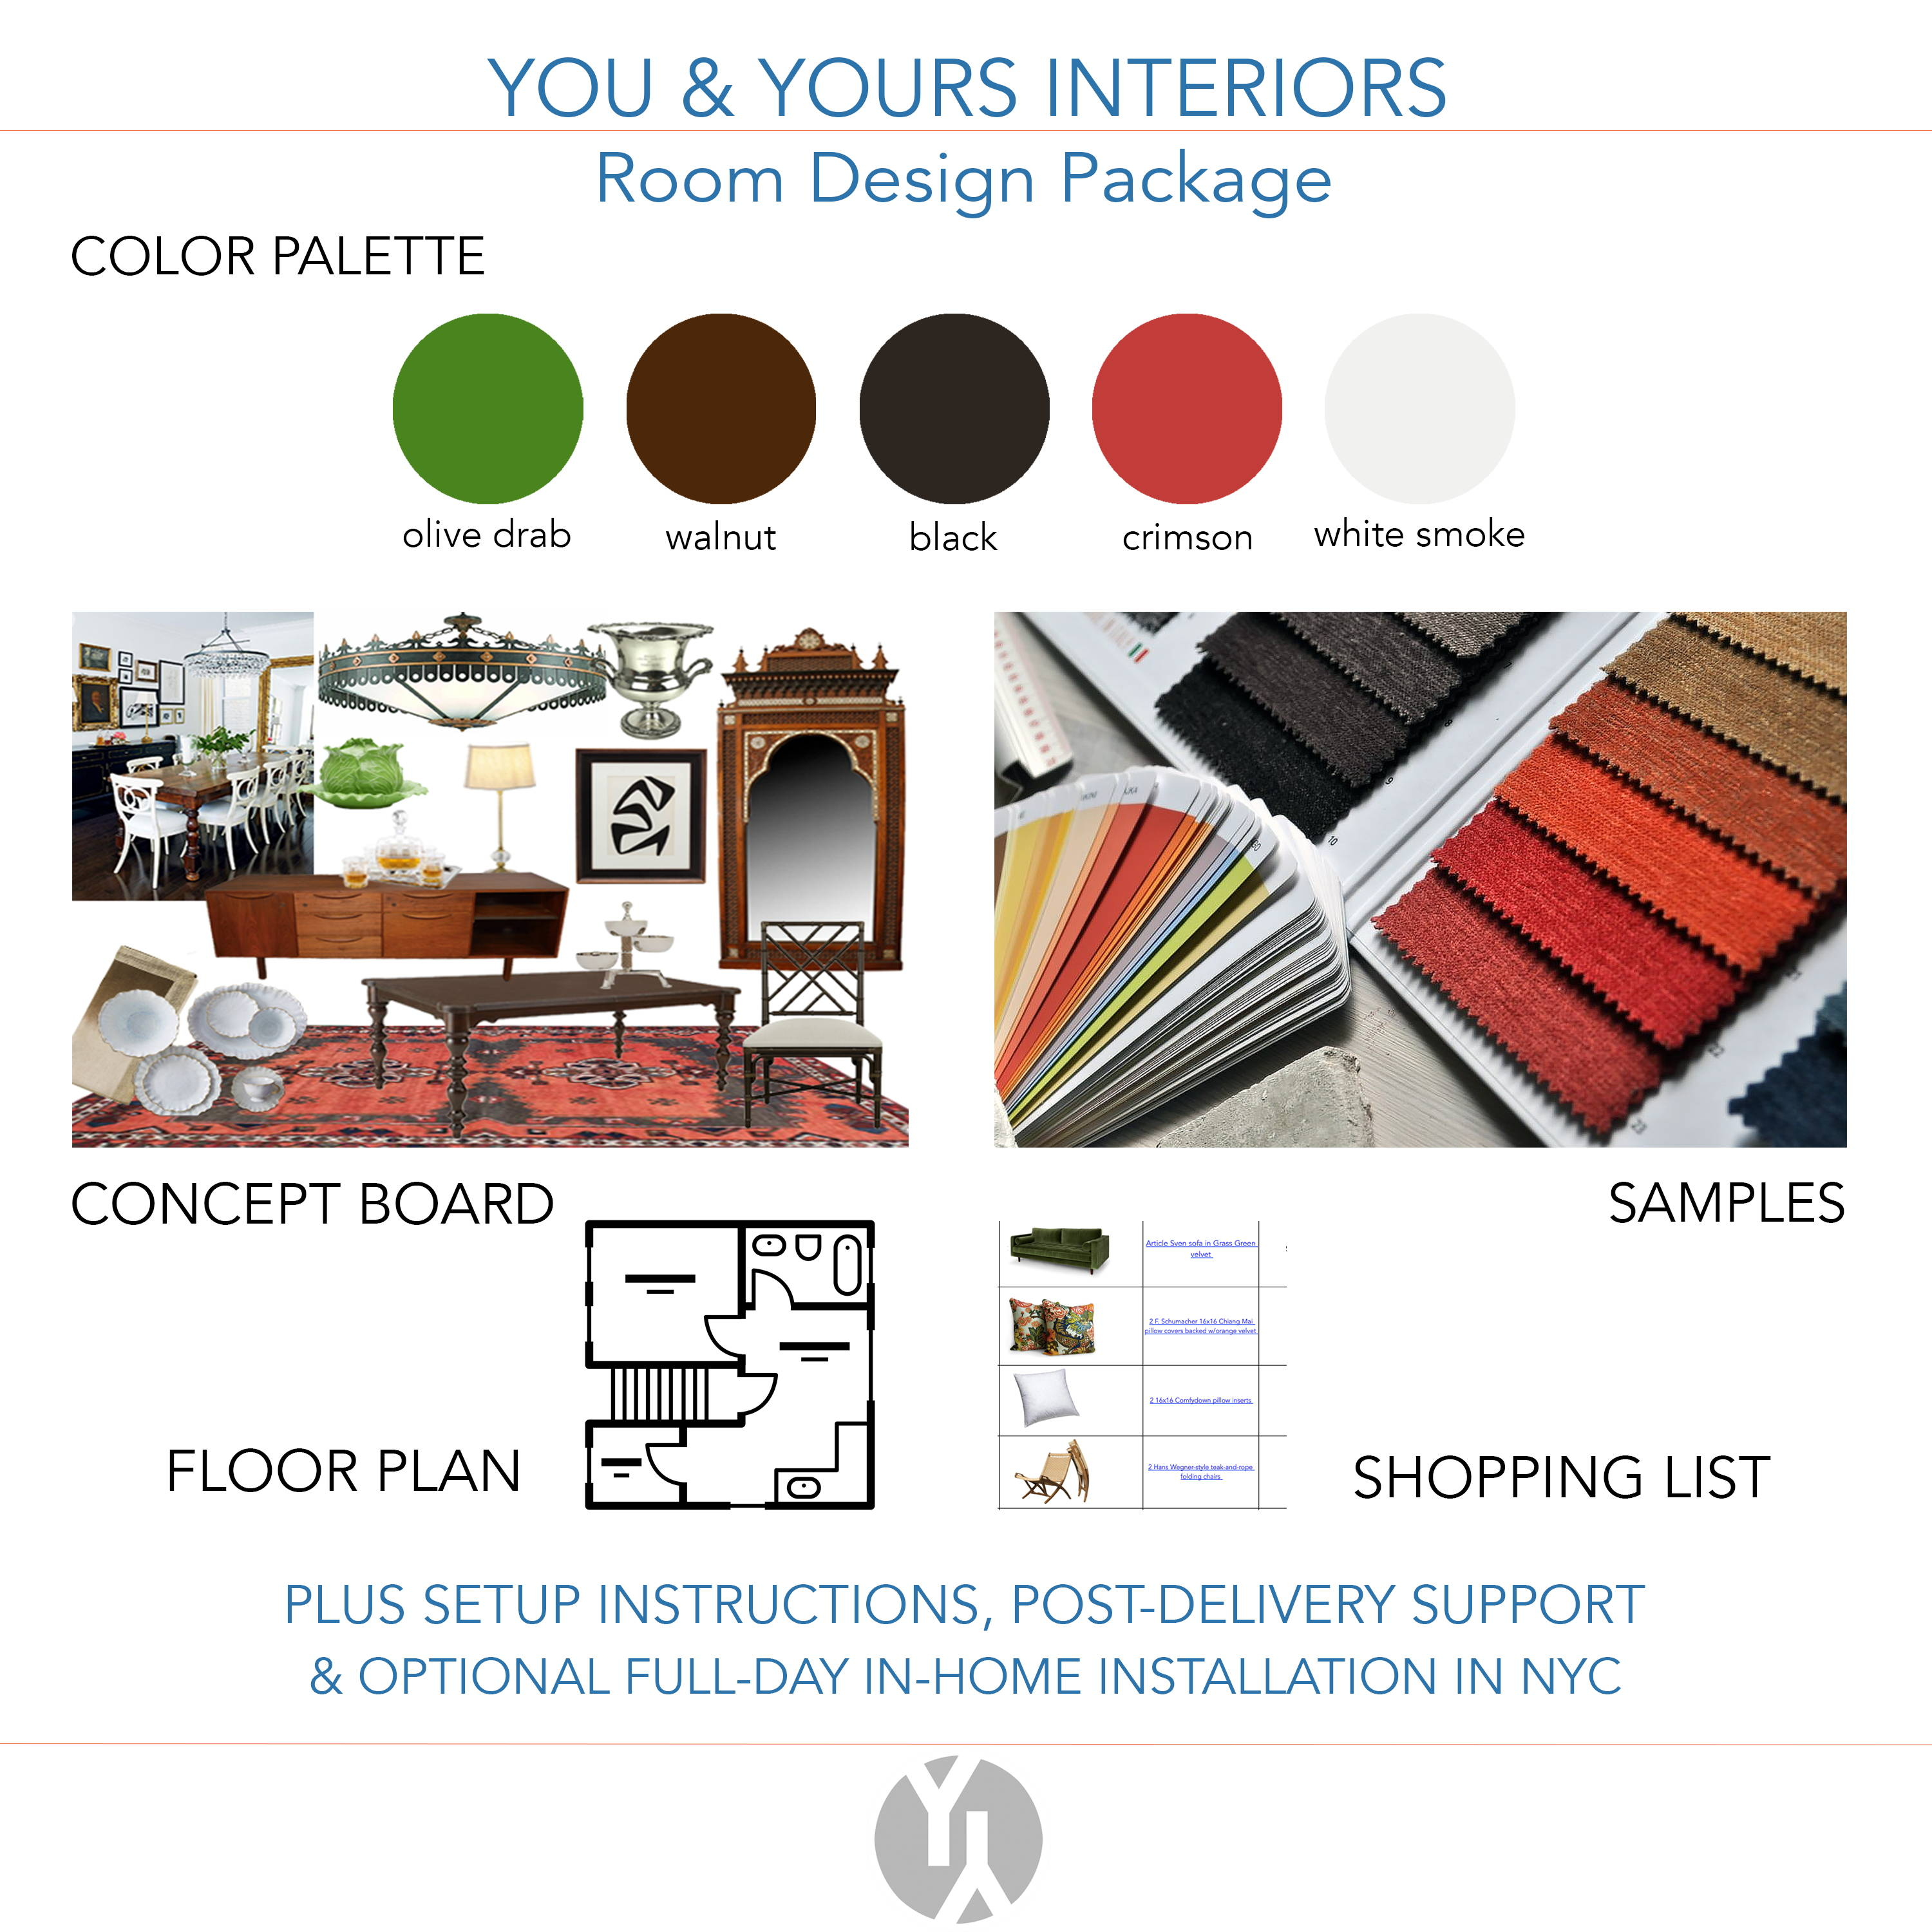 An interior design concept board featuring photos of samples, a floor plan, and a shopping list. A color palette includes green, red, and brown.